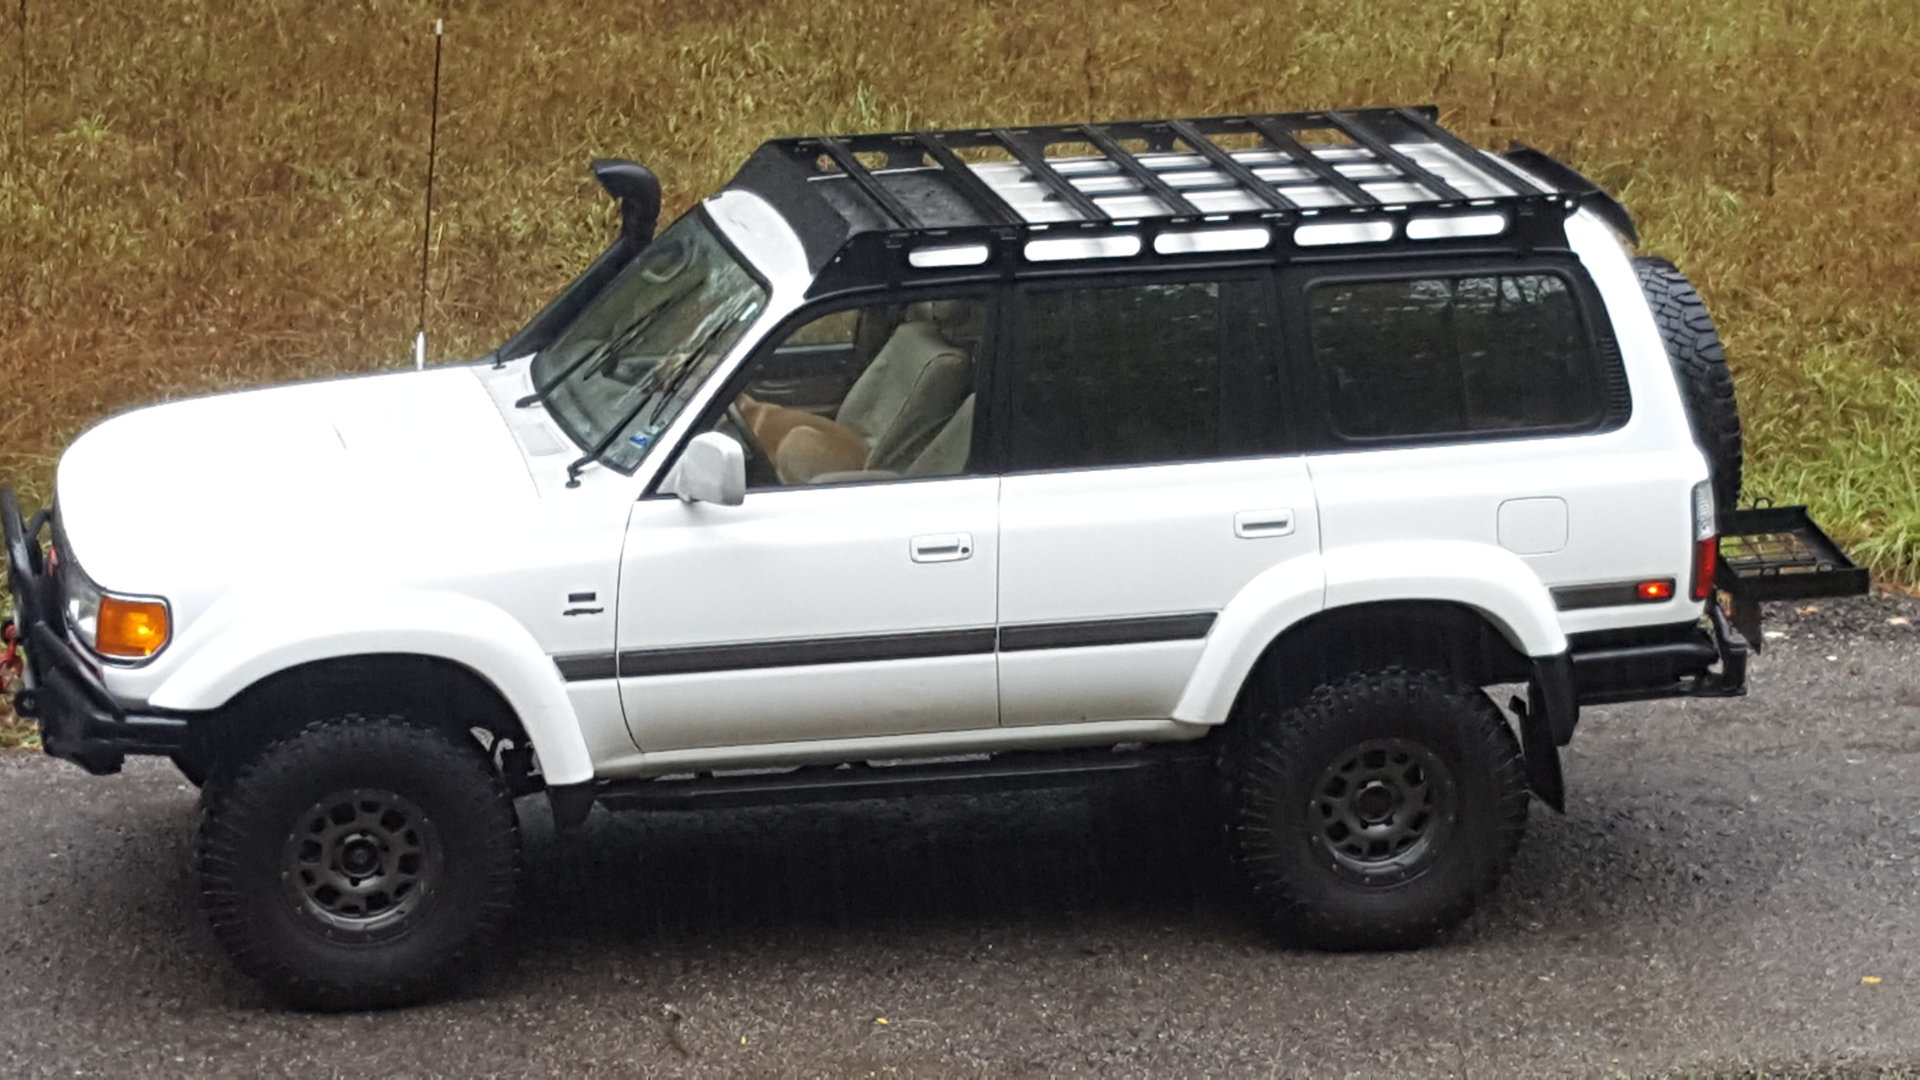 New Vendor Quot Bowfin Cruisers Quot And New 80 Series Roof Rack